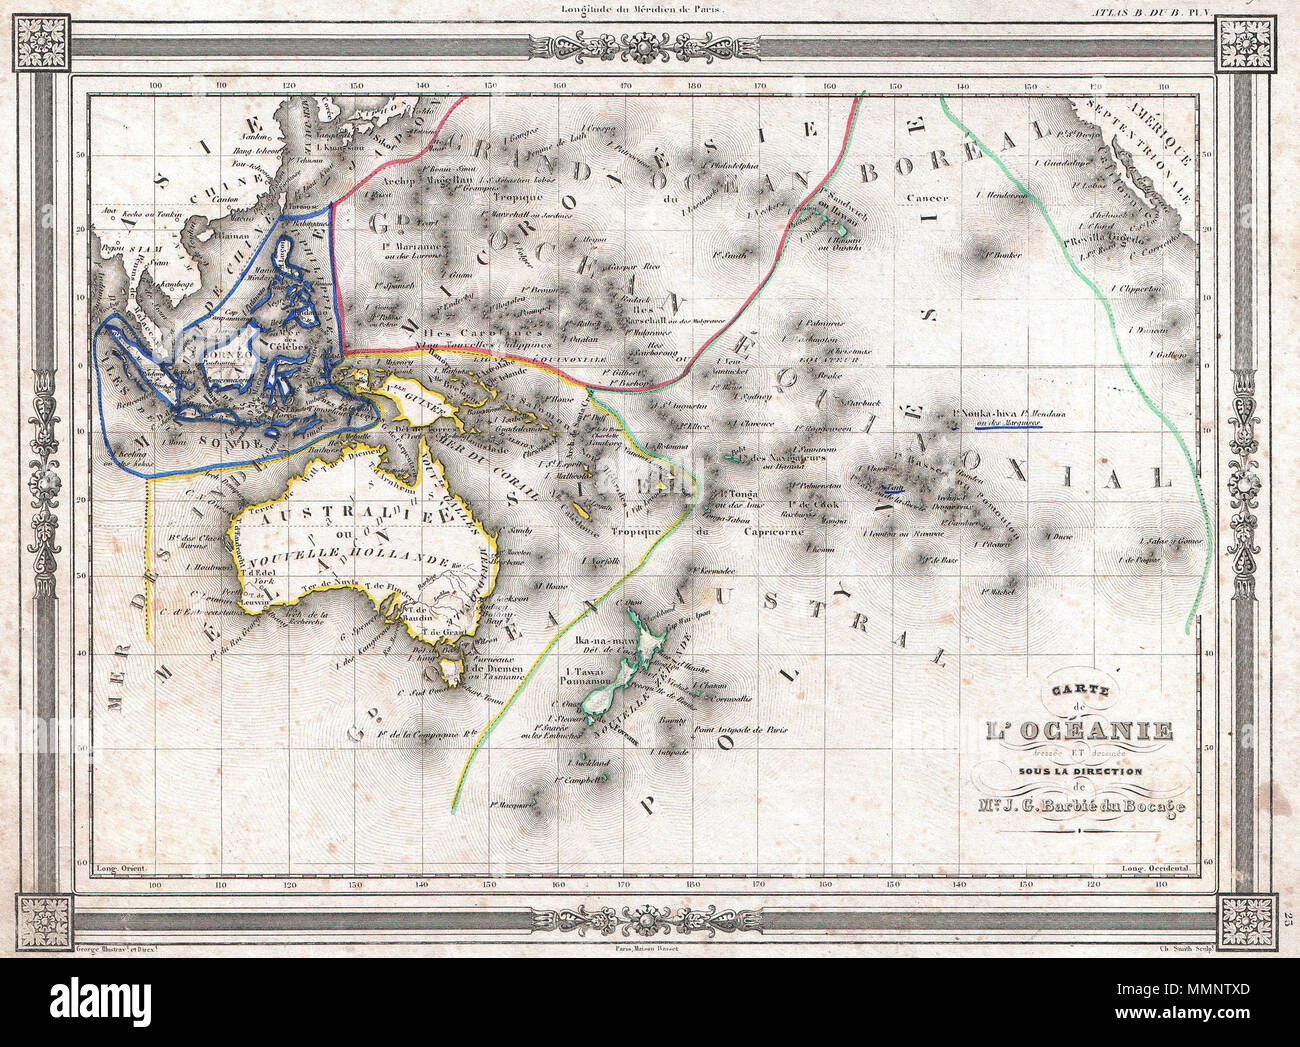 English: An uncommon and extremely attractive 1852 map of Oceania by on